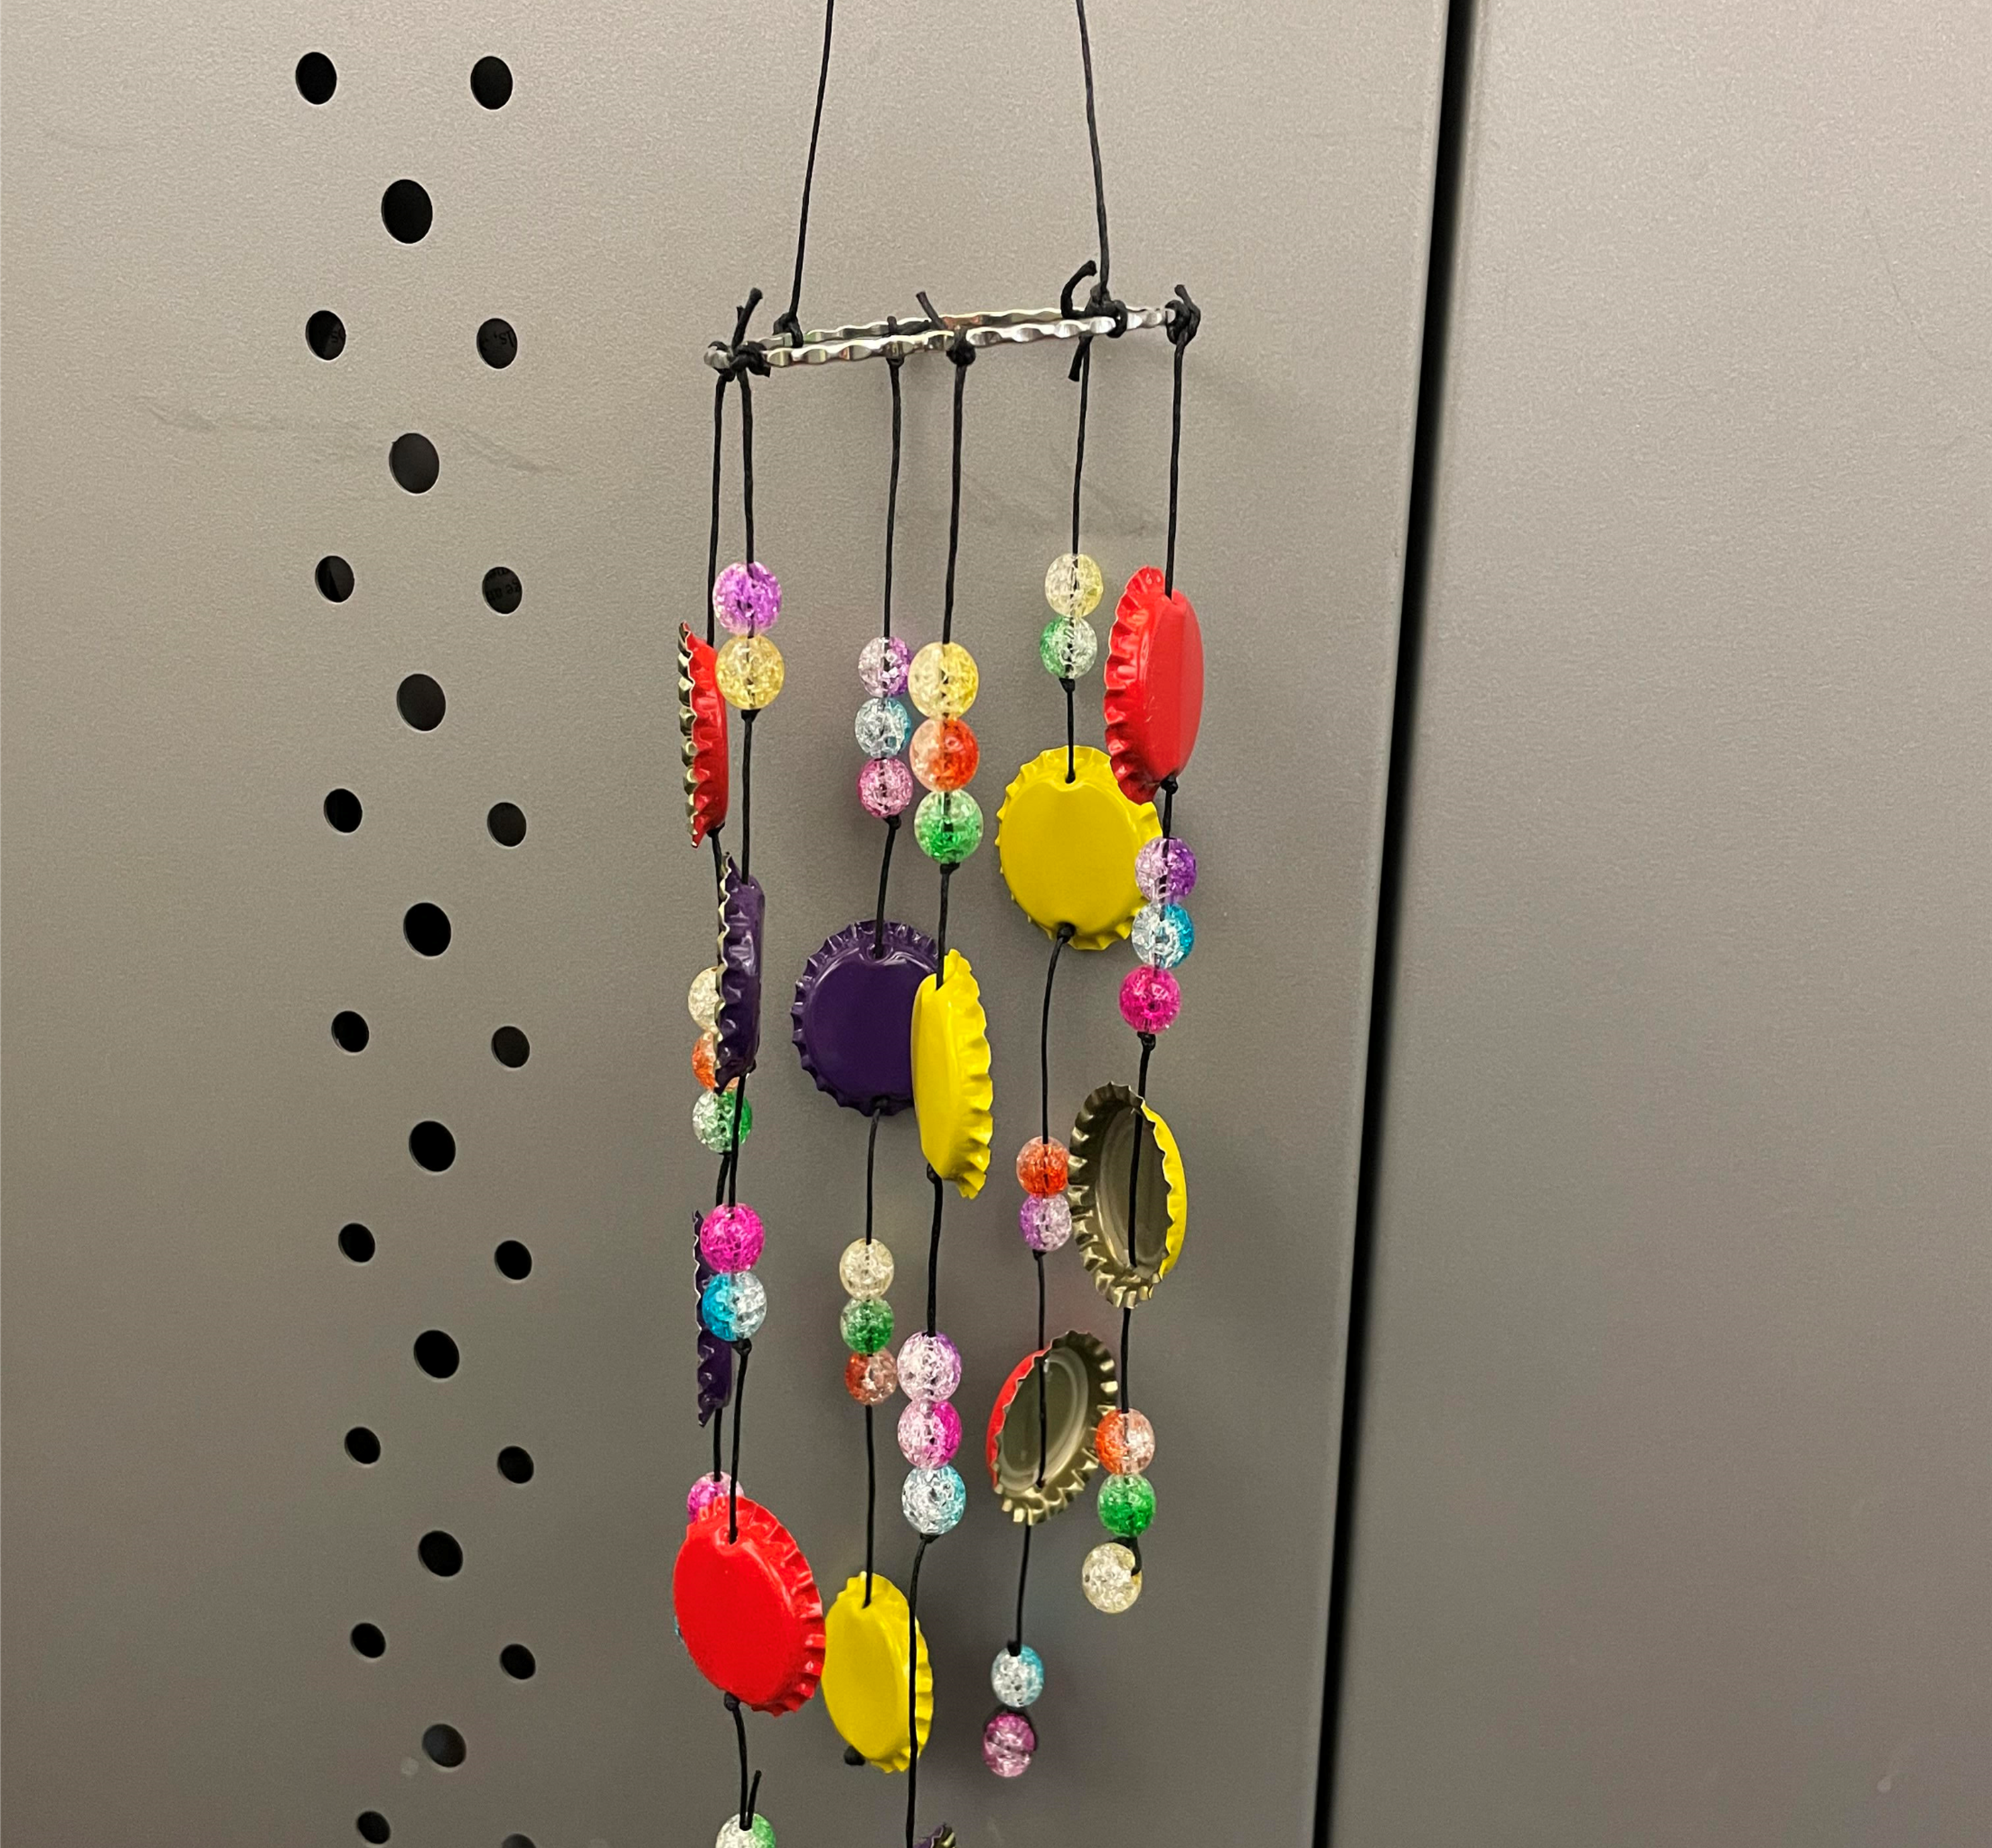 Tinker Zone To Go: Wind Chimes